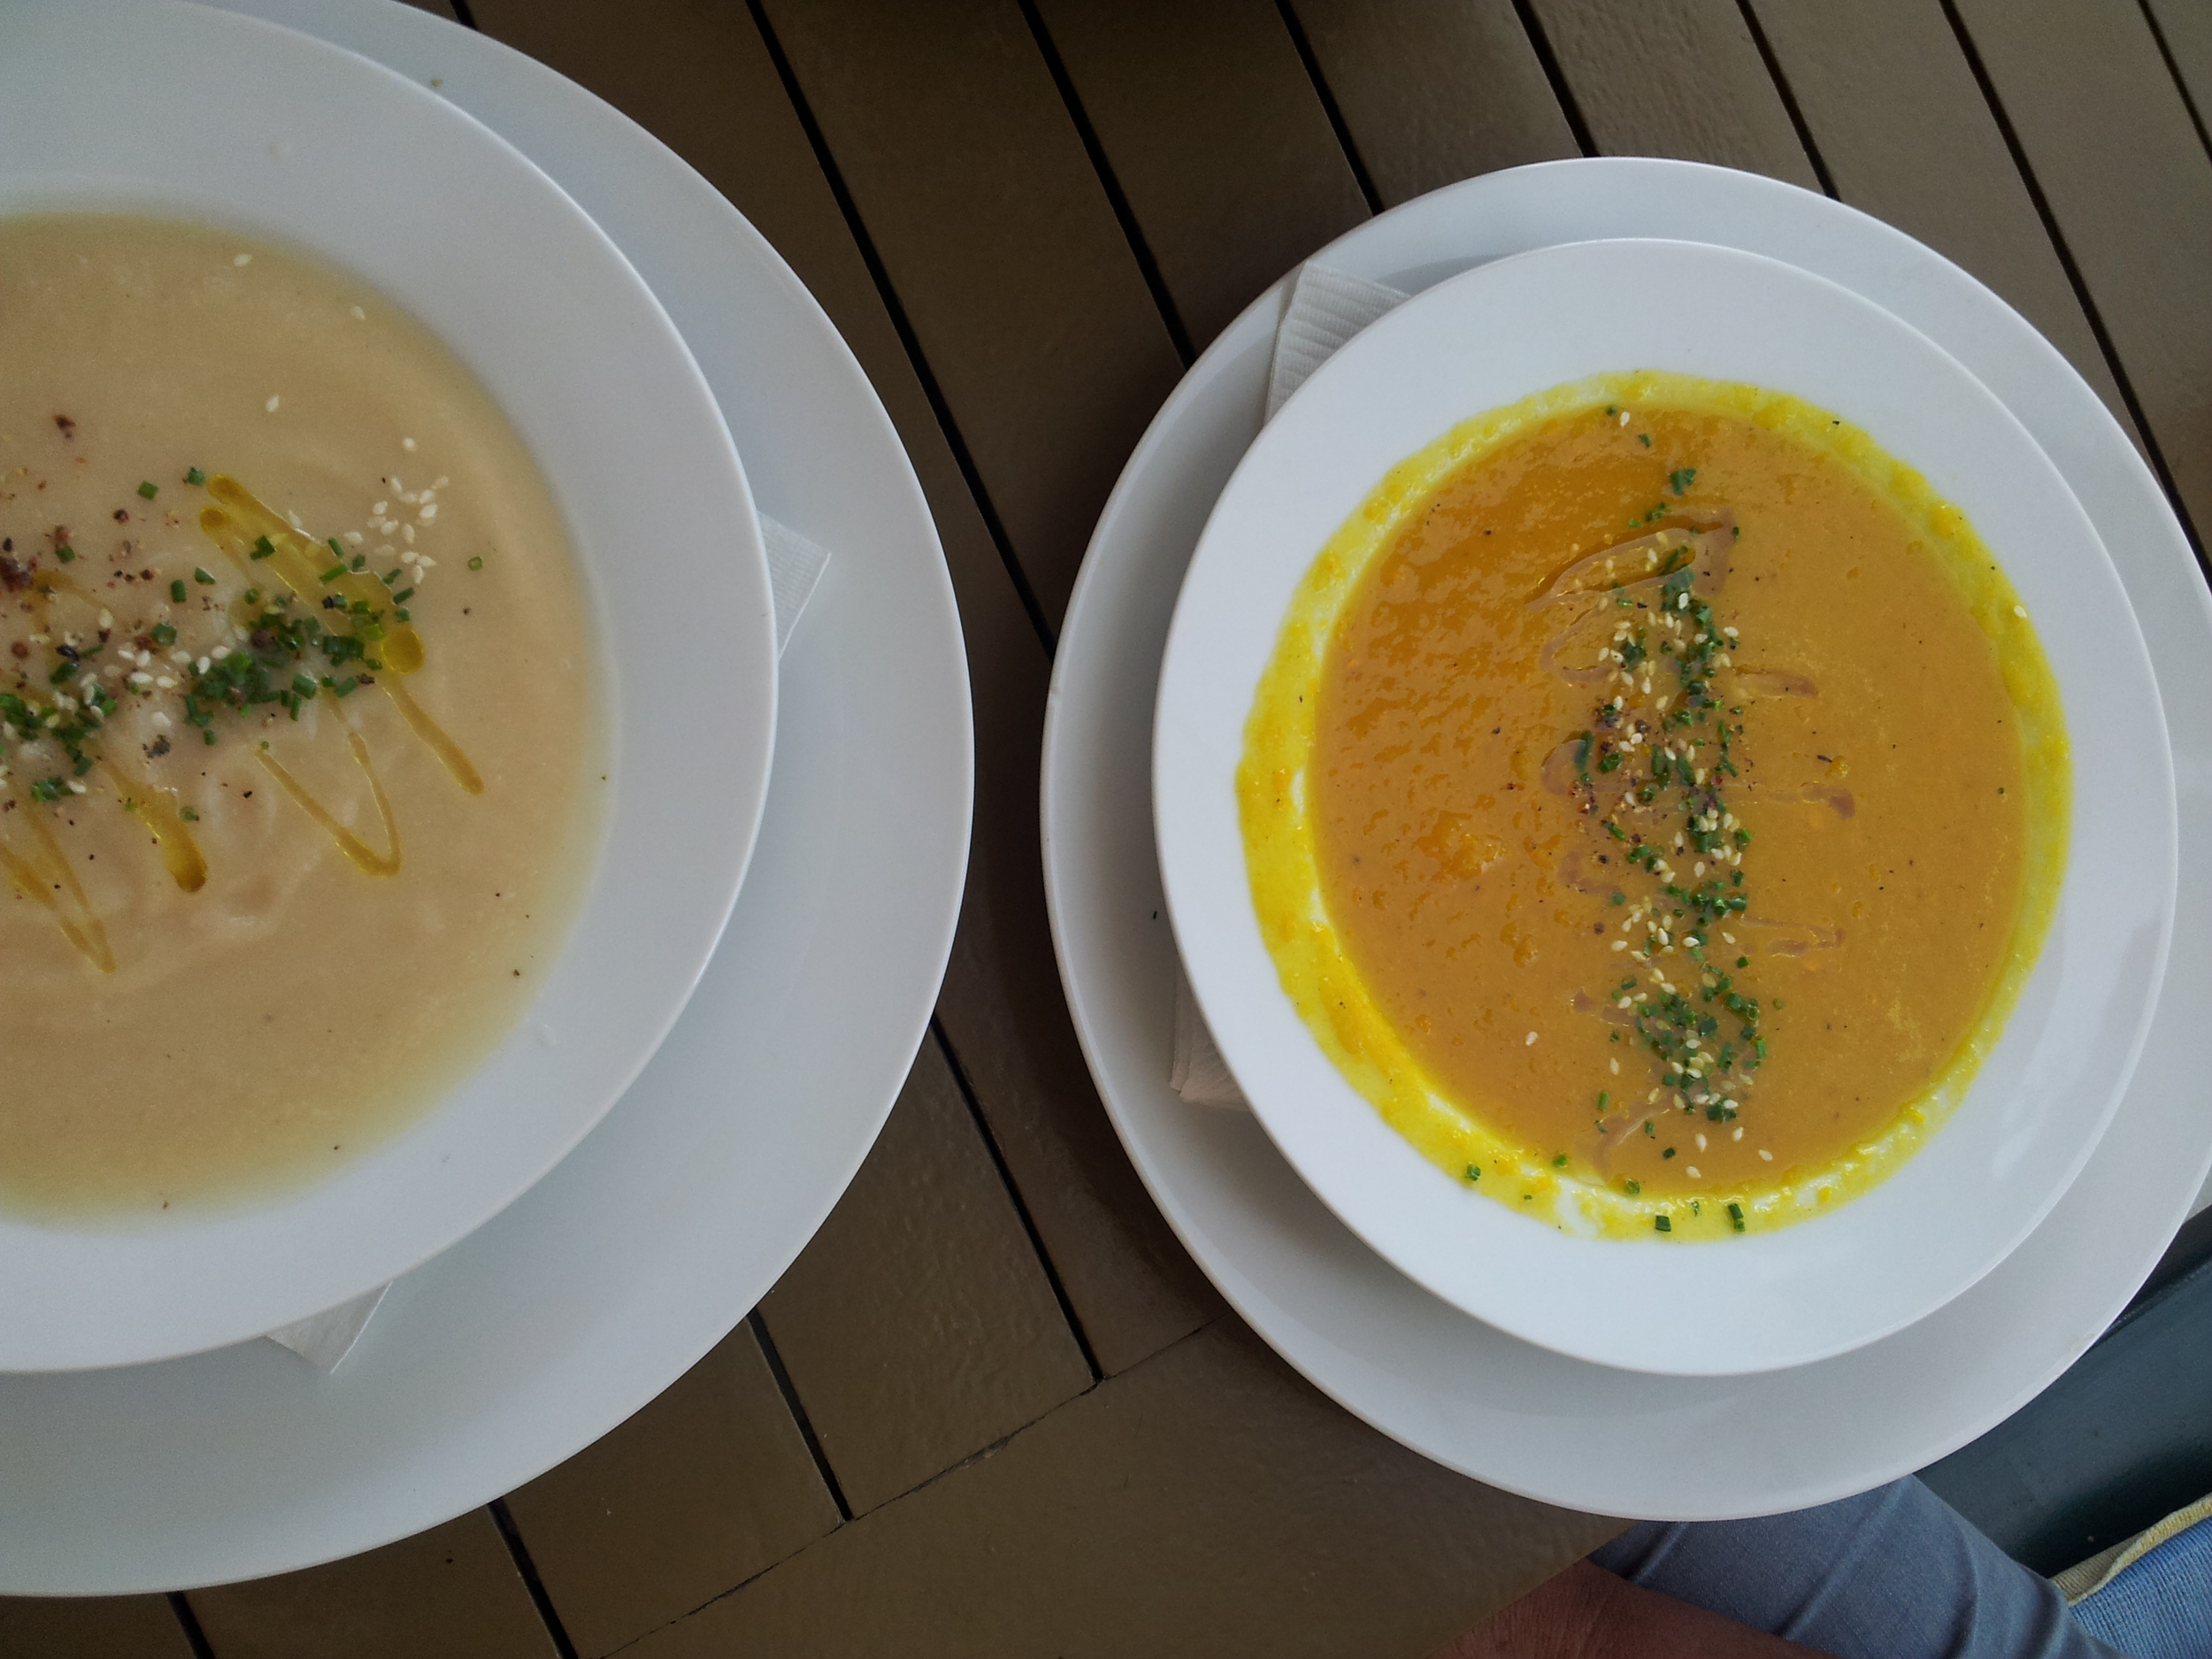 Interesting vegetarian fair at Villa Verdin: yellow capsicum soup and Kohlrabi soup with nice garnishes